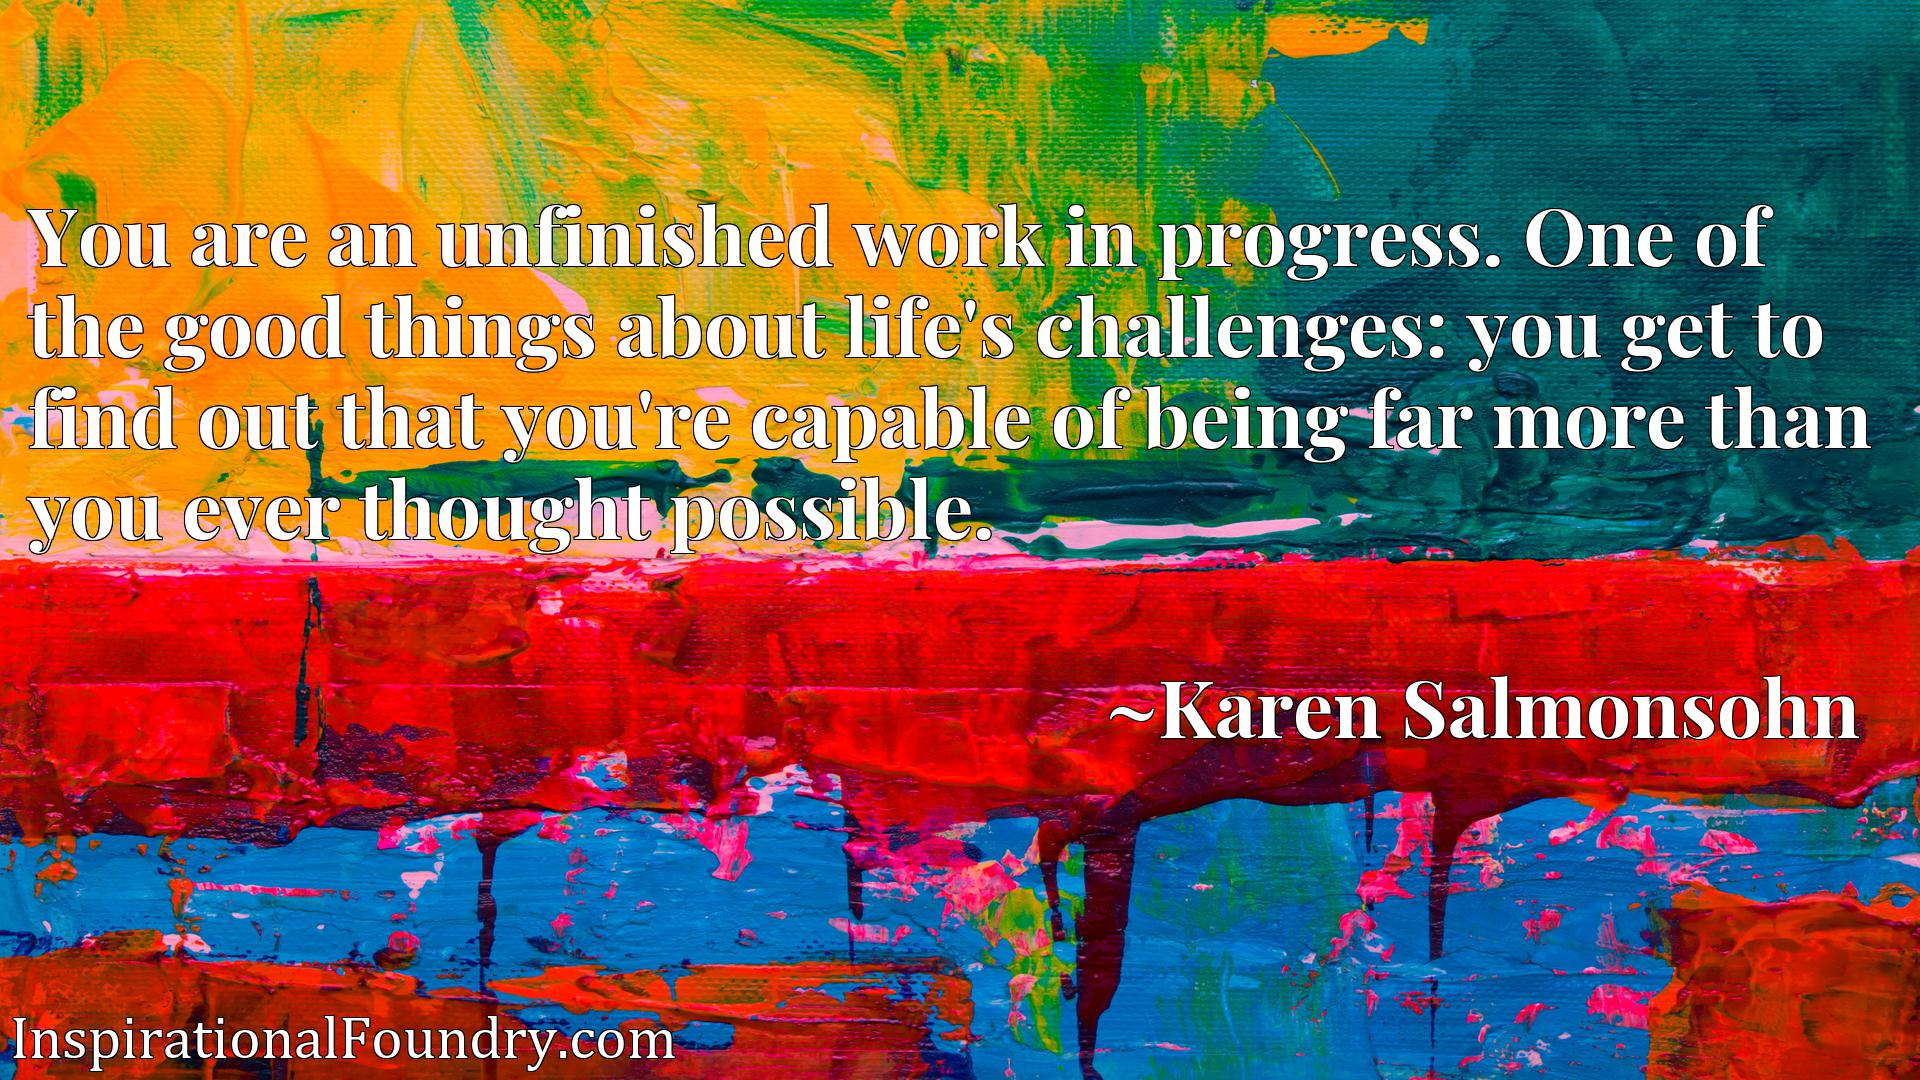 You are an unfinished work in progress. One of the good things about life's challenges: you get to find out that you're capable of being far more than you ever thought possible.